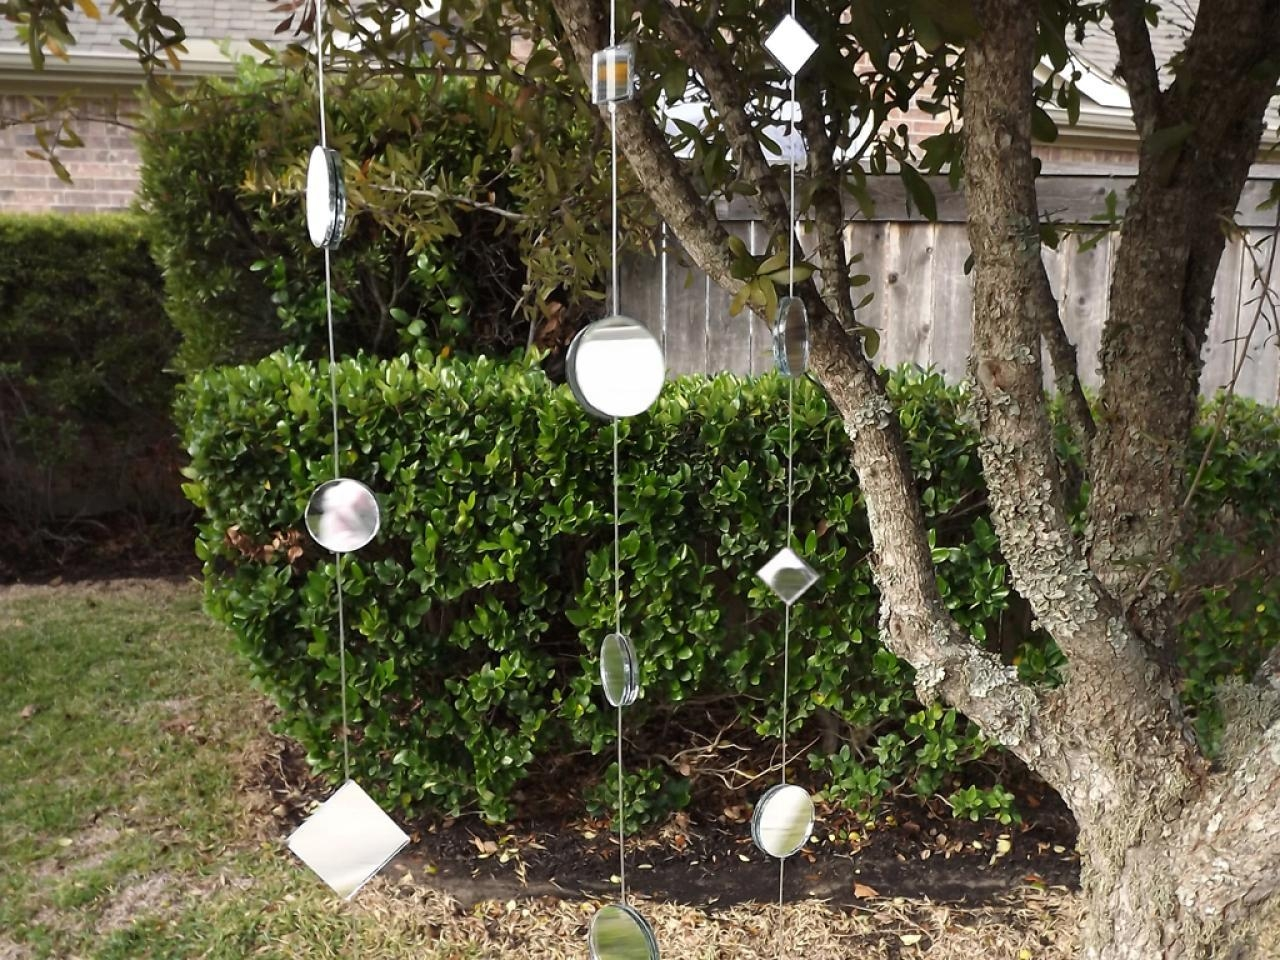 How To Make A Mirror Garland For The Garden | Hgtv For Gothic Garden Mirrors (Image 17 of 20)